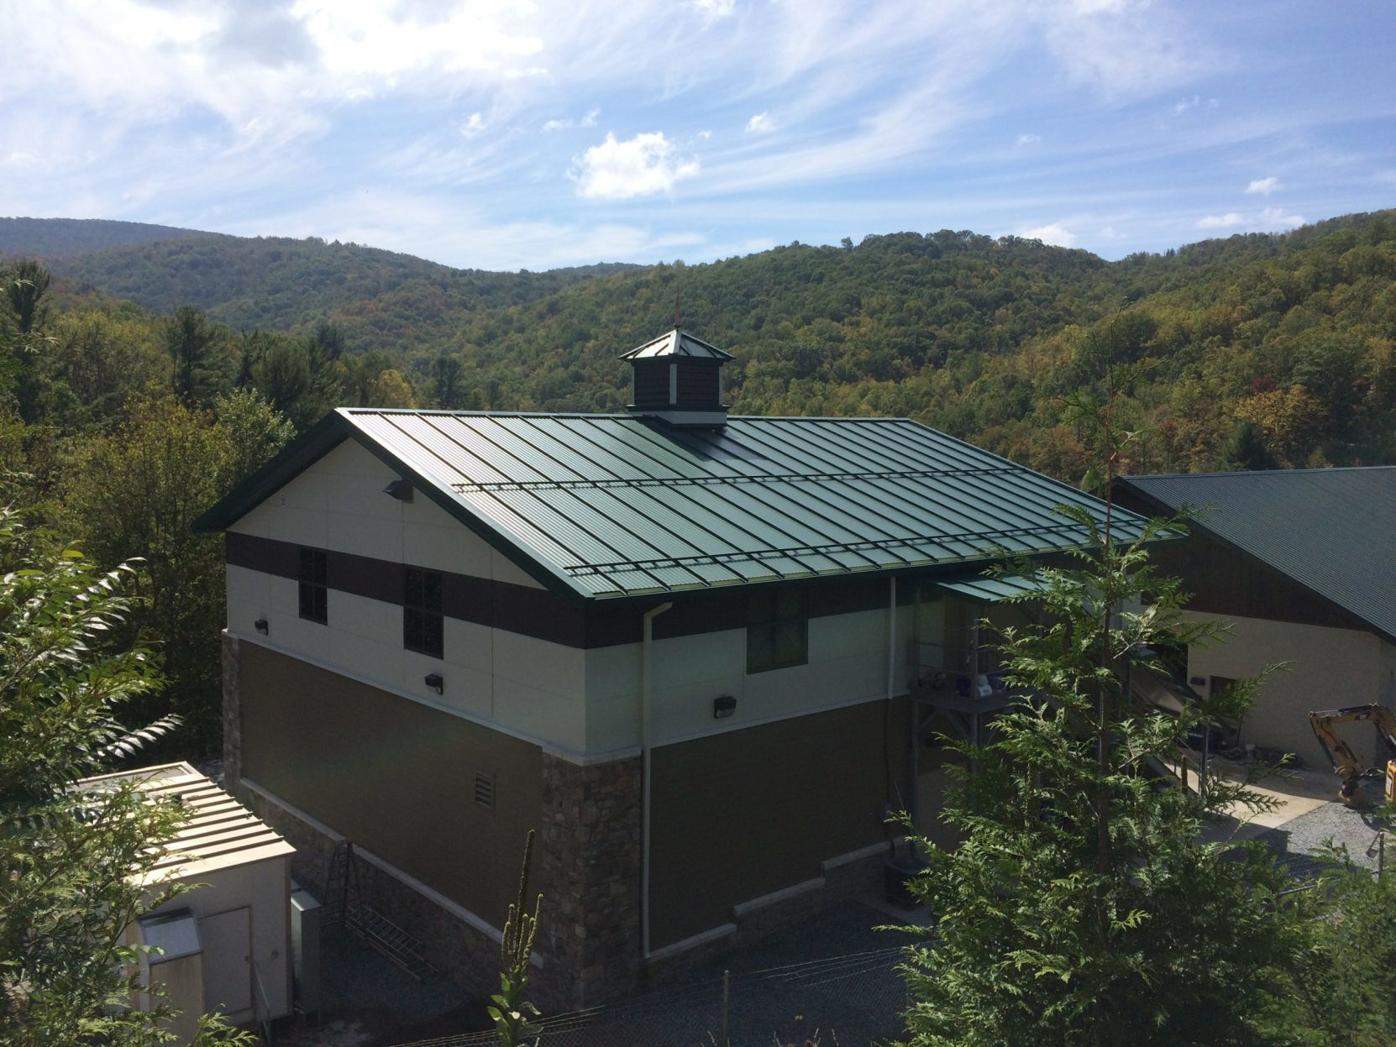 Beech Mountain Water Plant